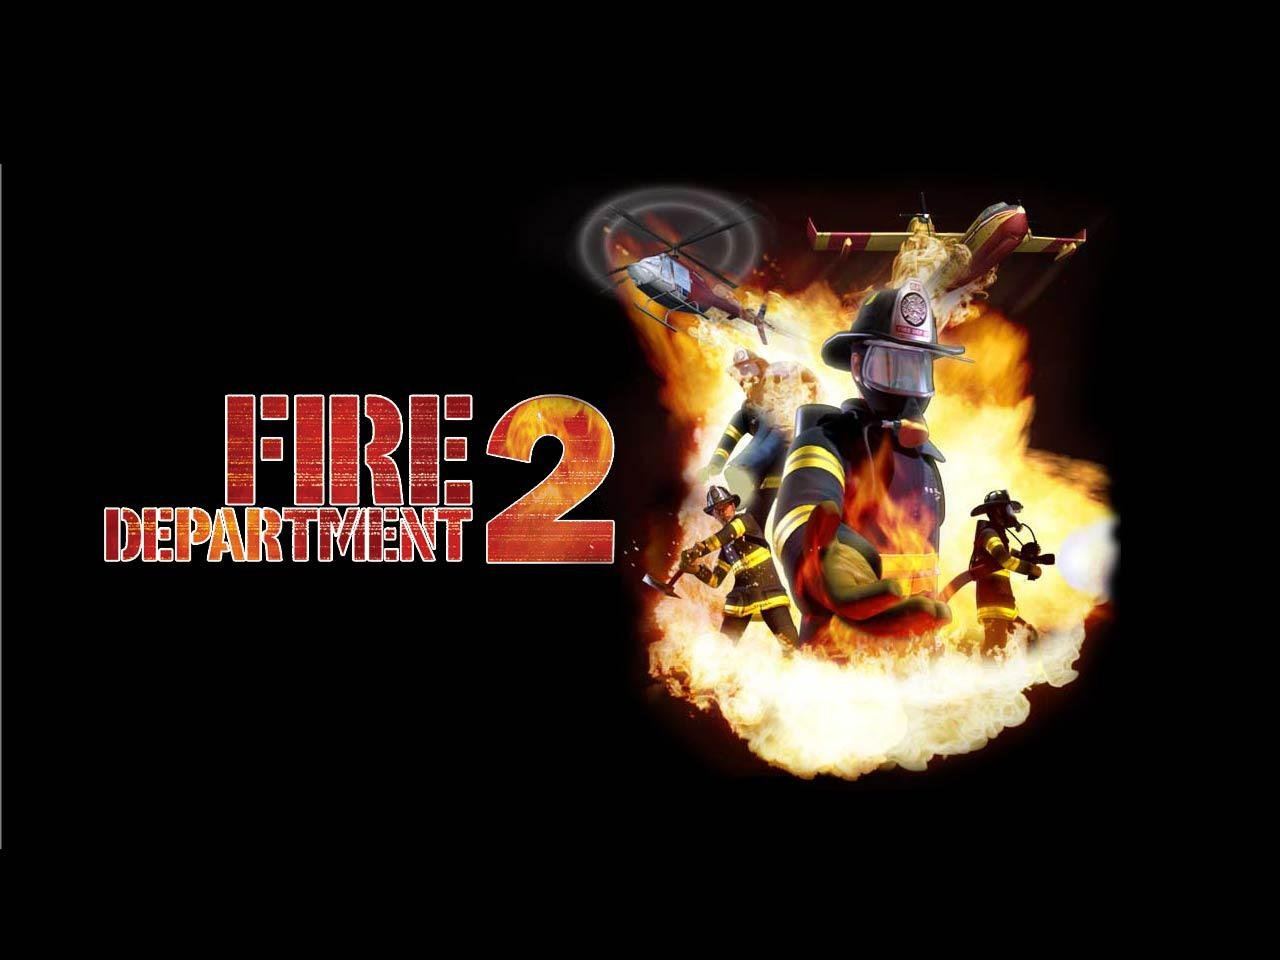 Firefighter   wallpaper for the game wallpapers 1280x960